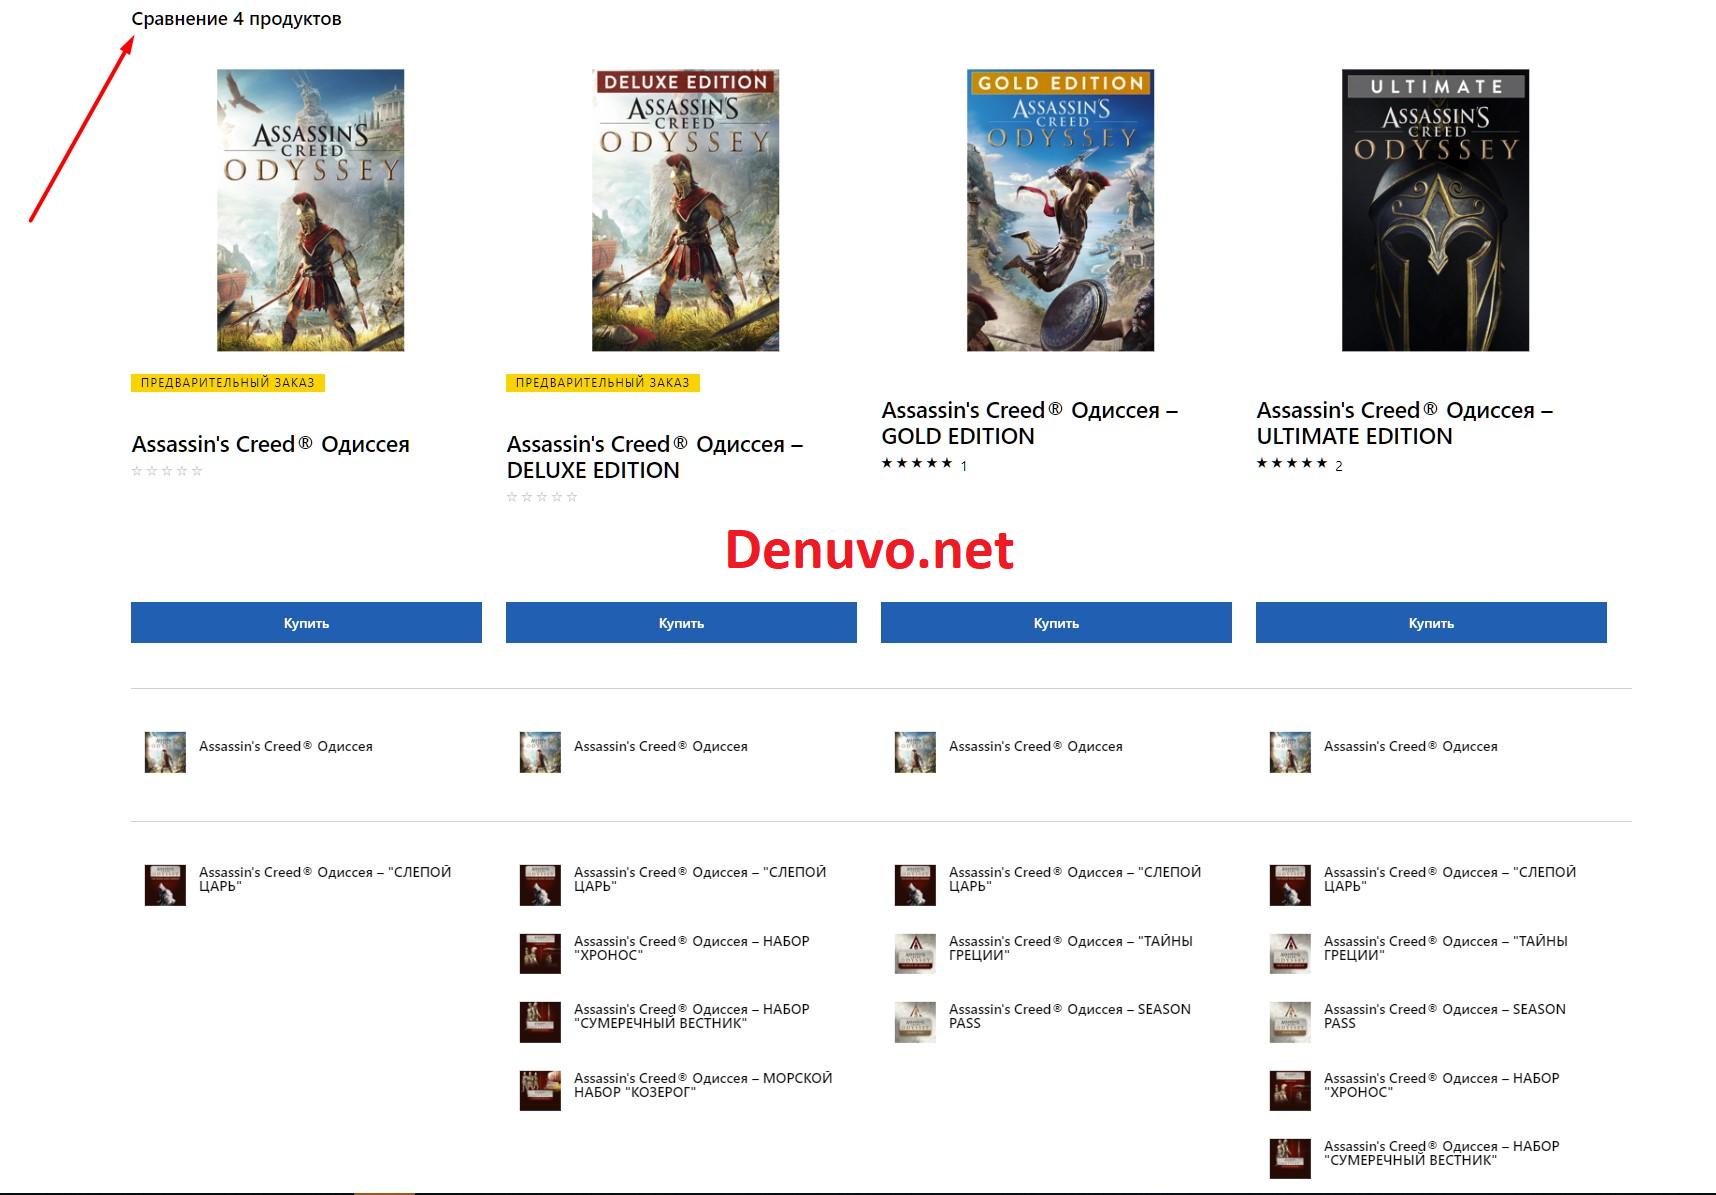 Assassin´s Creed Odyssey ULTIMATE (V1.10) ALL DLC